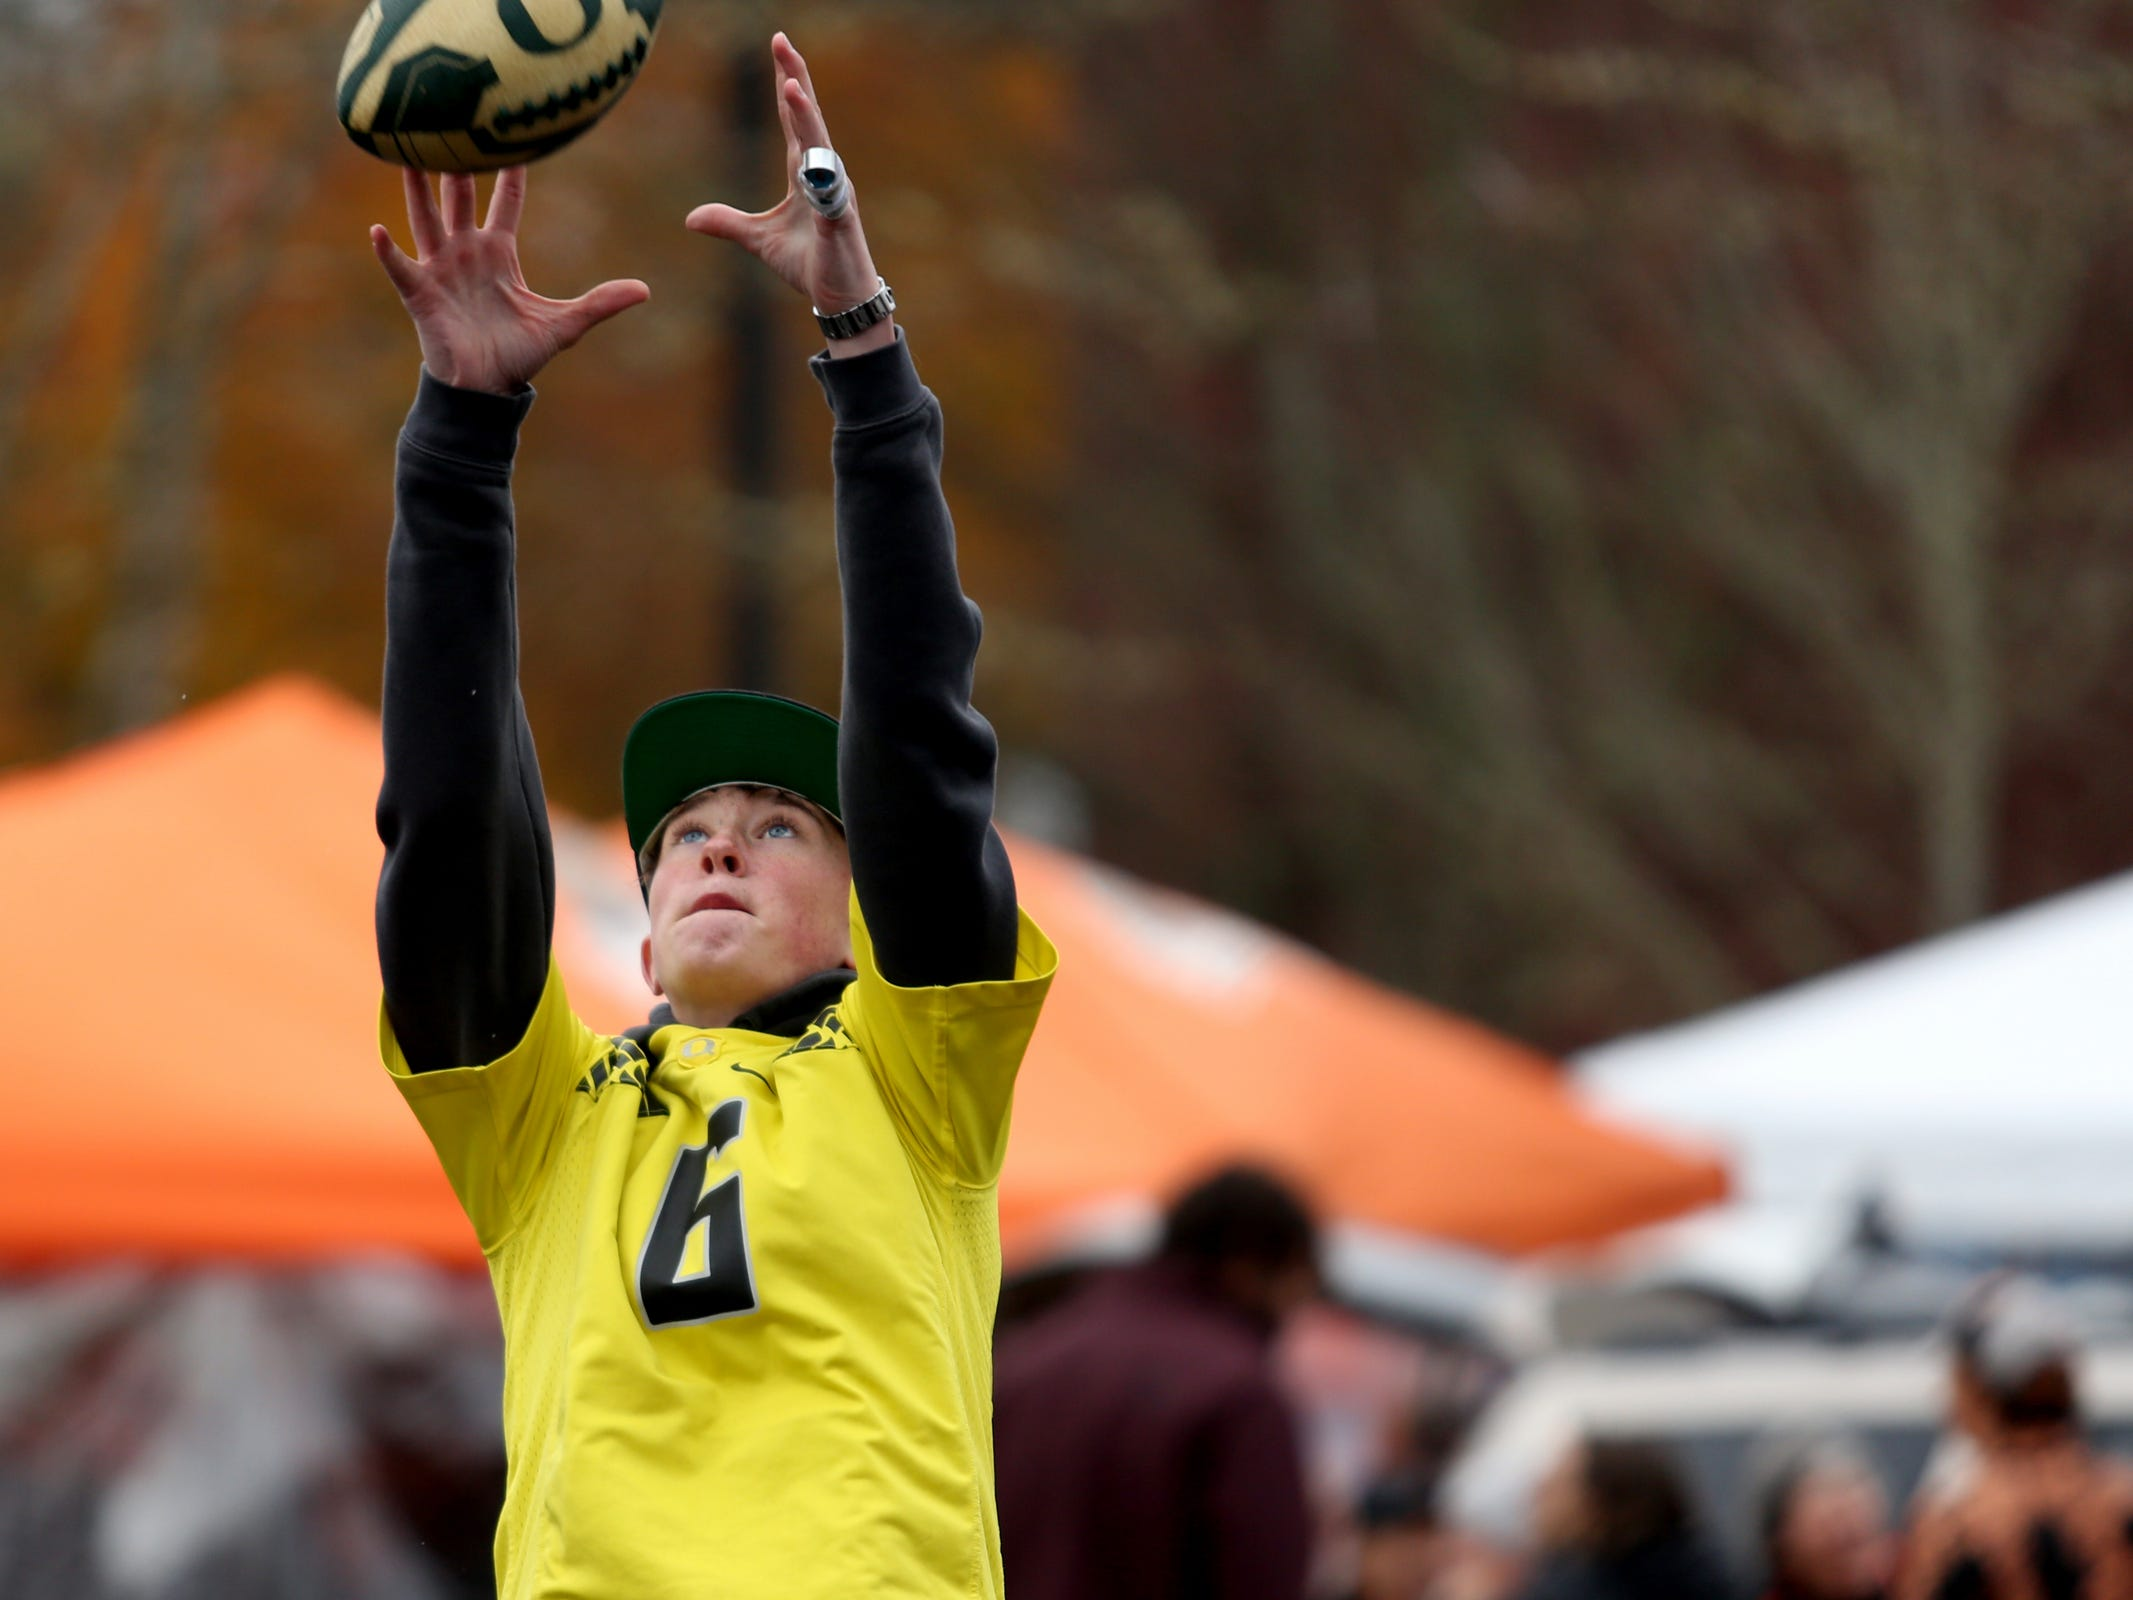 Landon Bottorff, 14, of Portland, plays catch before the start of the Oregon vs. Oregon State Civil war football game at Oregon State University in Corvallis on Friday, Nov. 23, 2018.